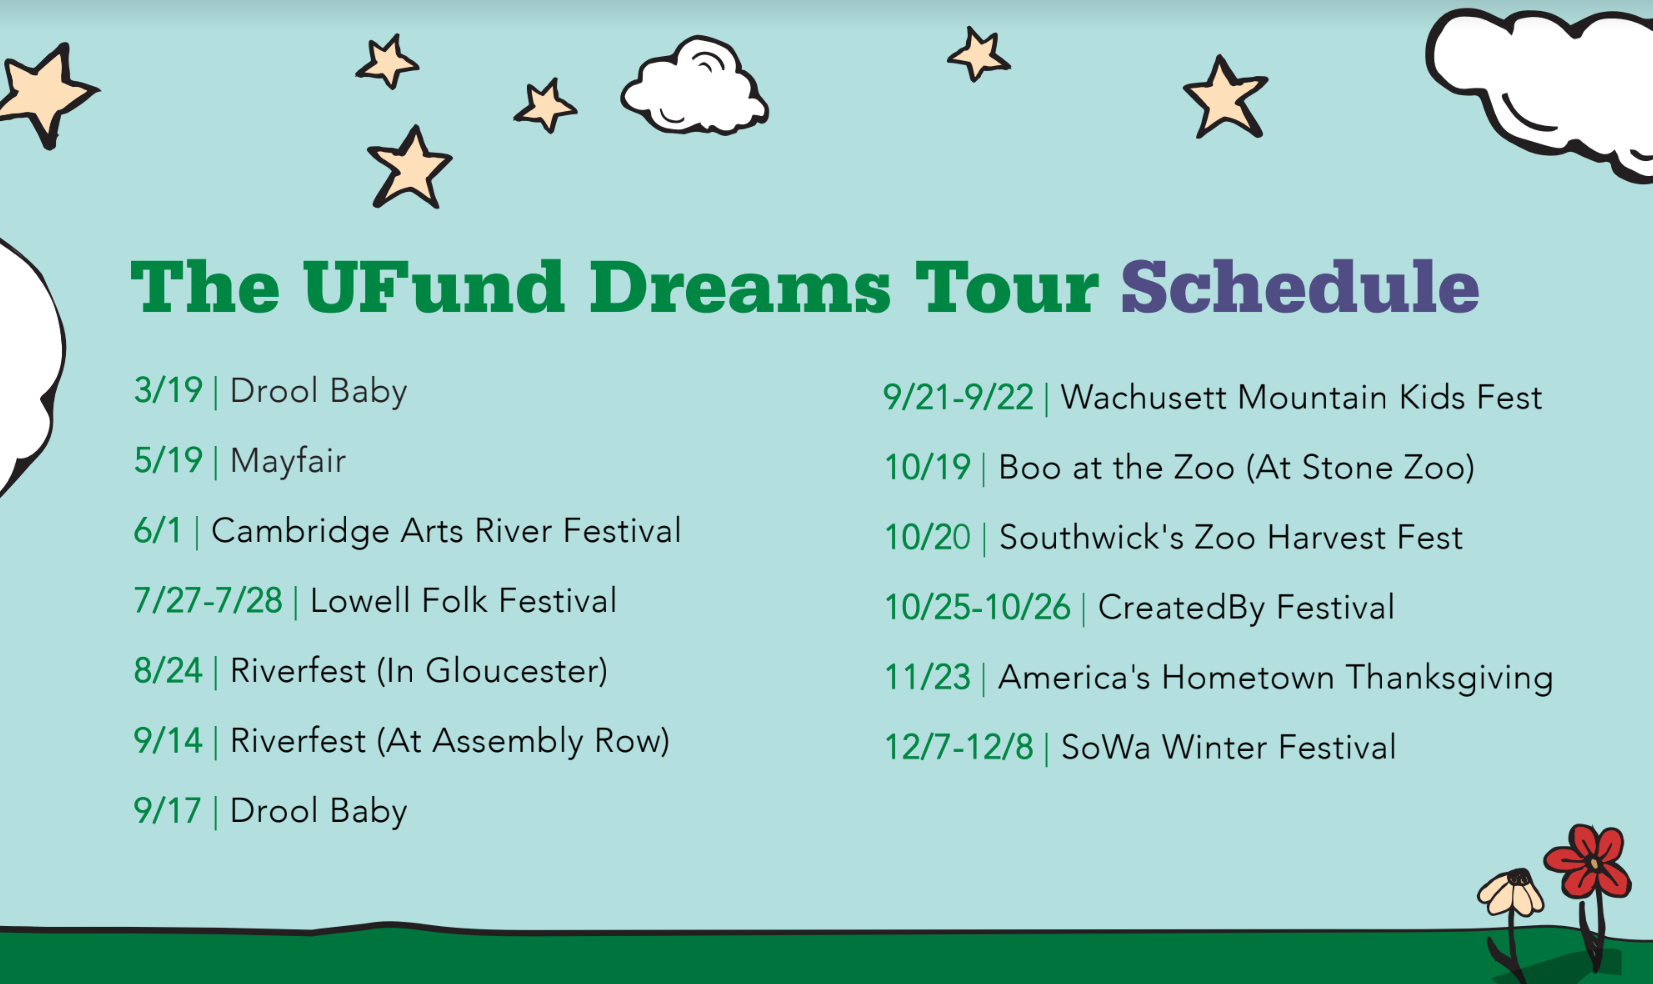 U.Fund Dreams Tour 2019 Schedule